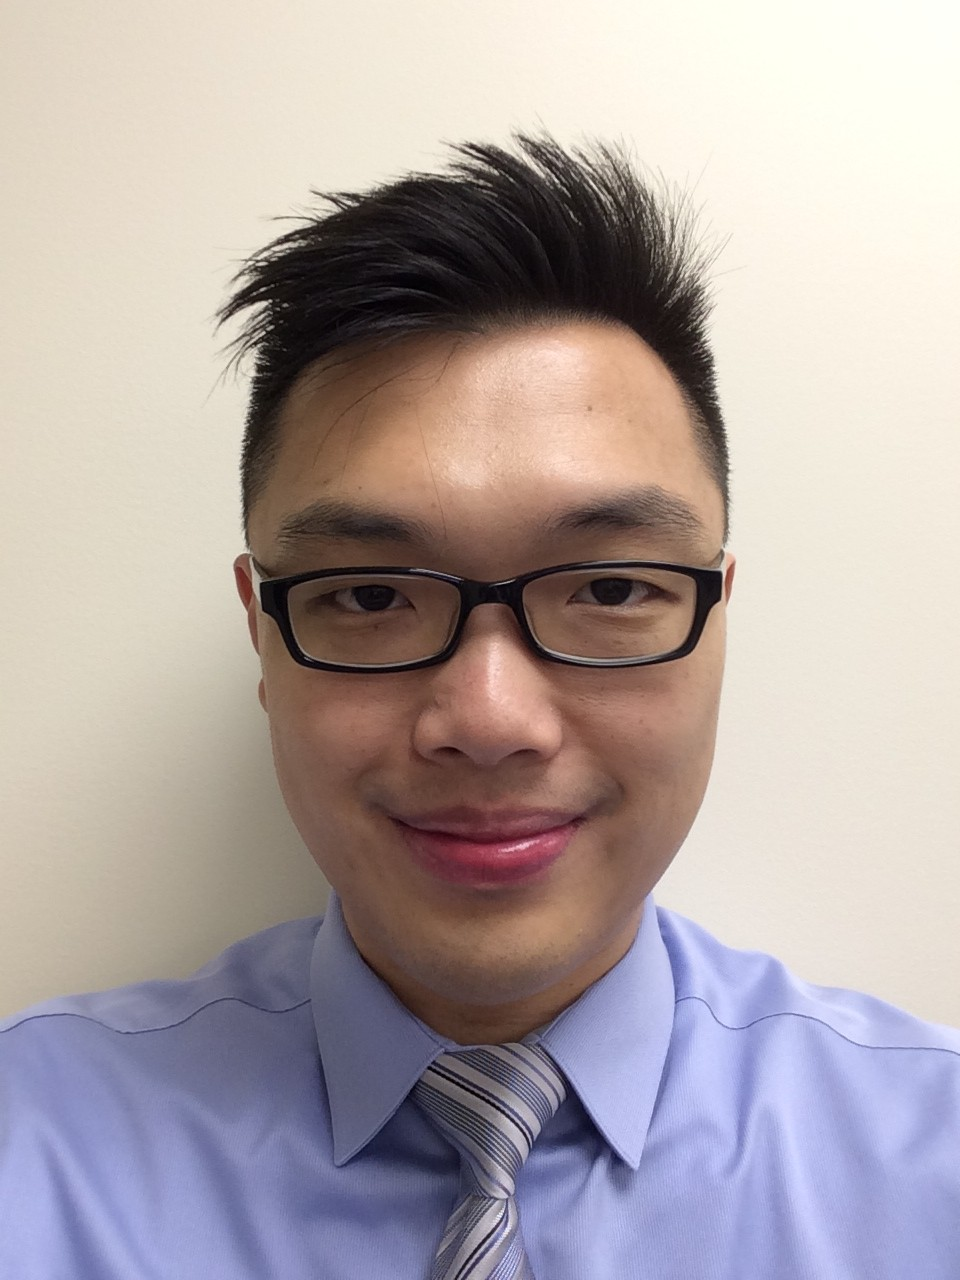 LIU Pharmacy Professor Billy Sin on Advancing Pharmacy